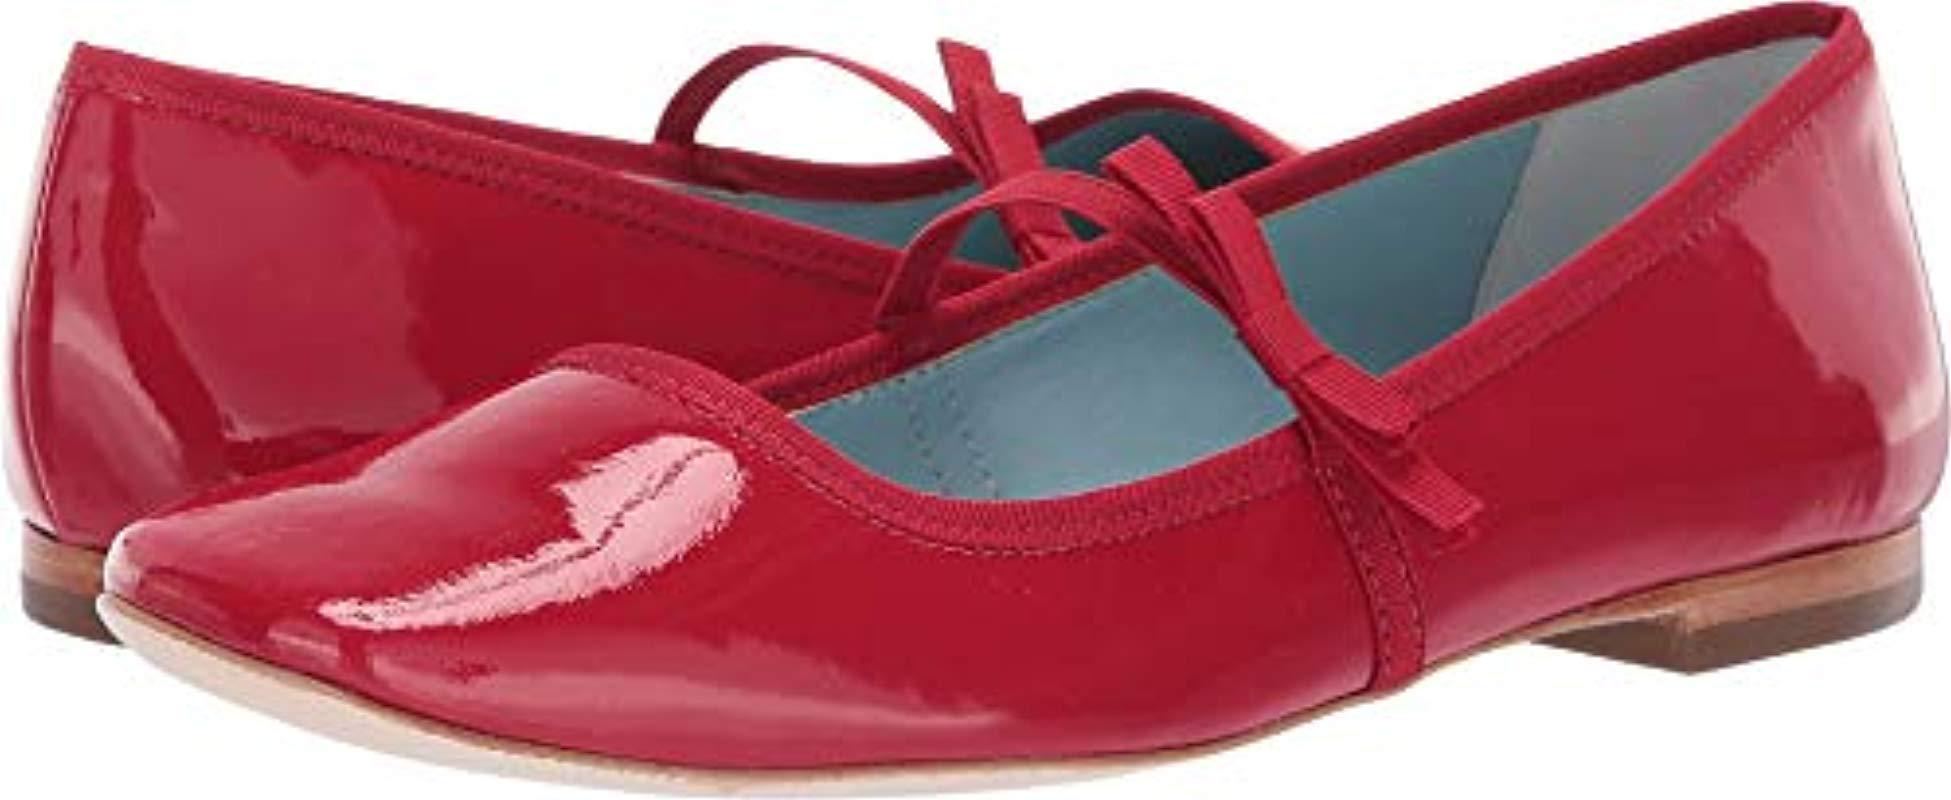 0a79b496c Frances Valentine Jude in Red - Lyst